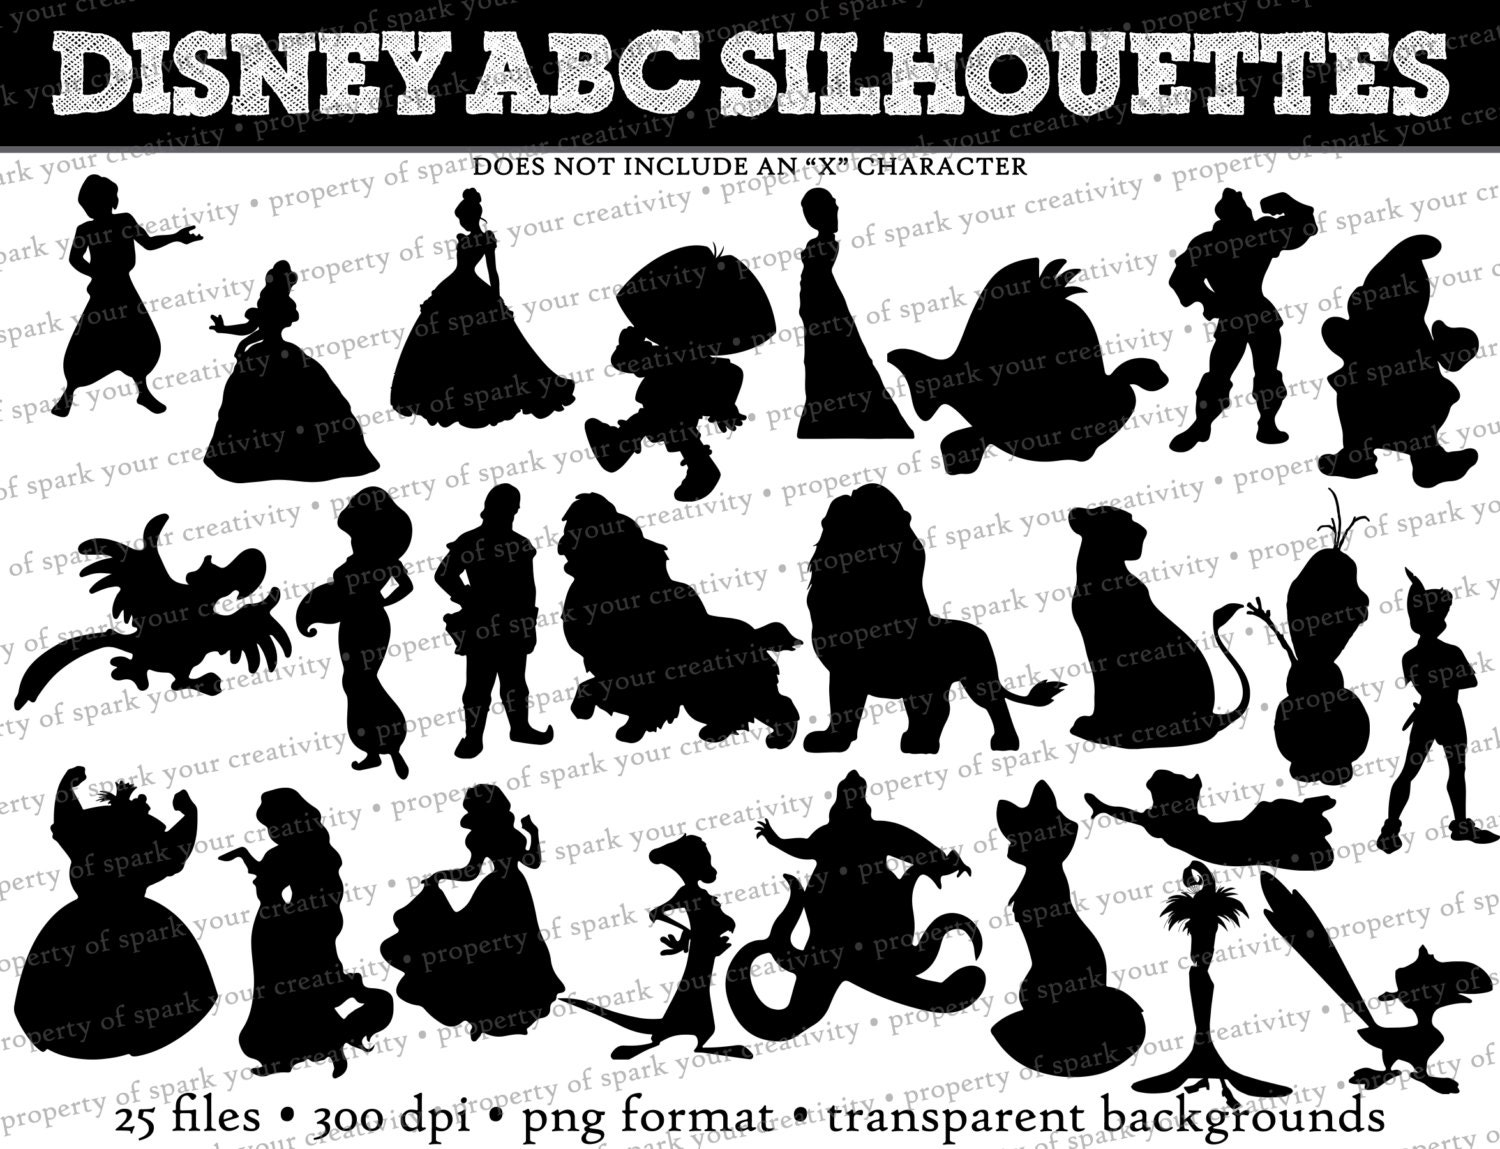 Disney Princess Silhouette Disney Abc Silhouettes